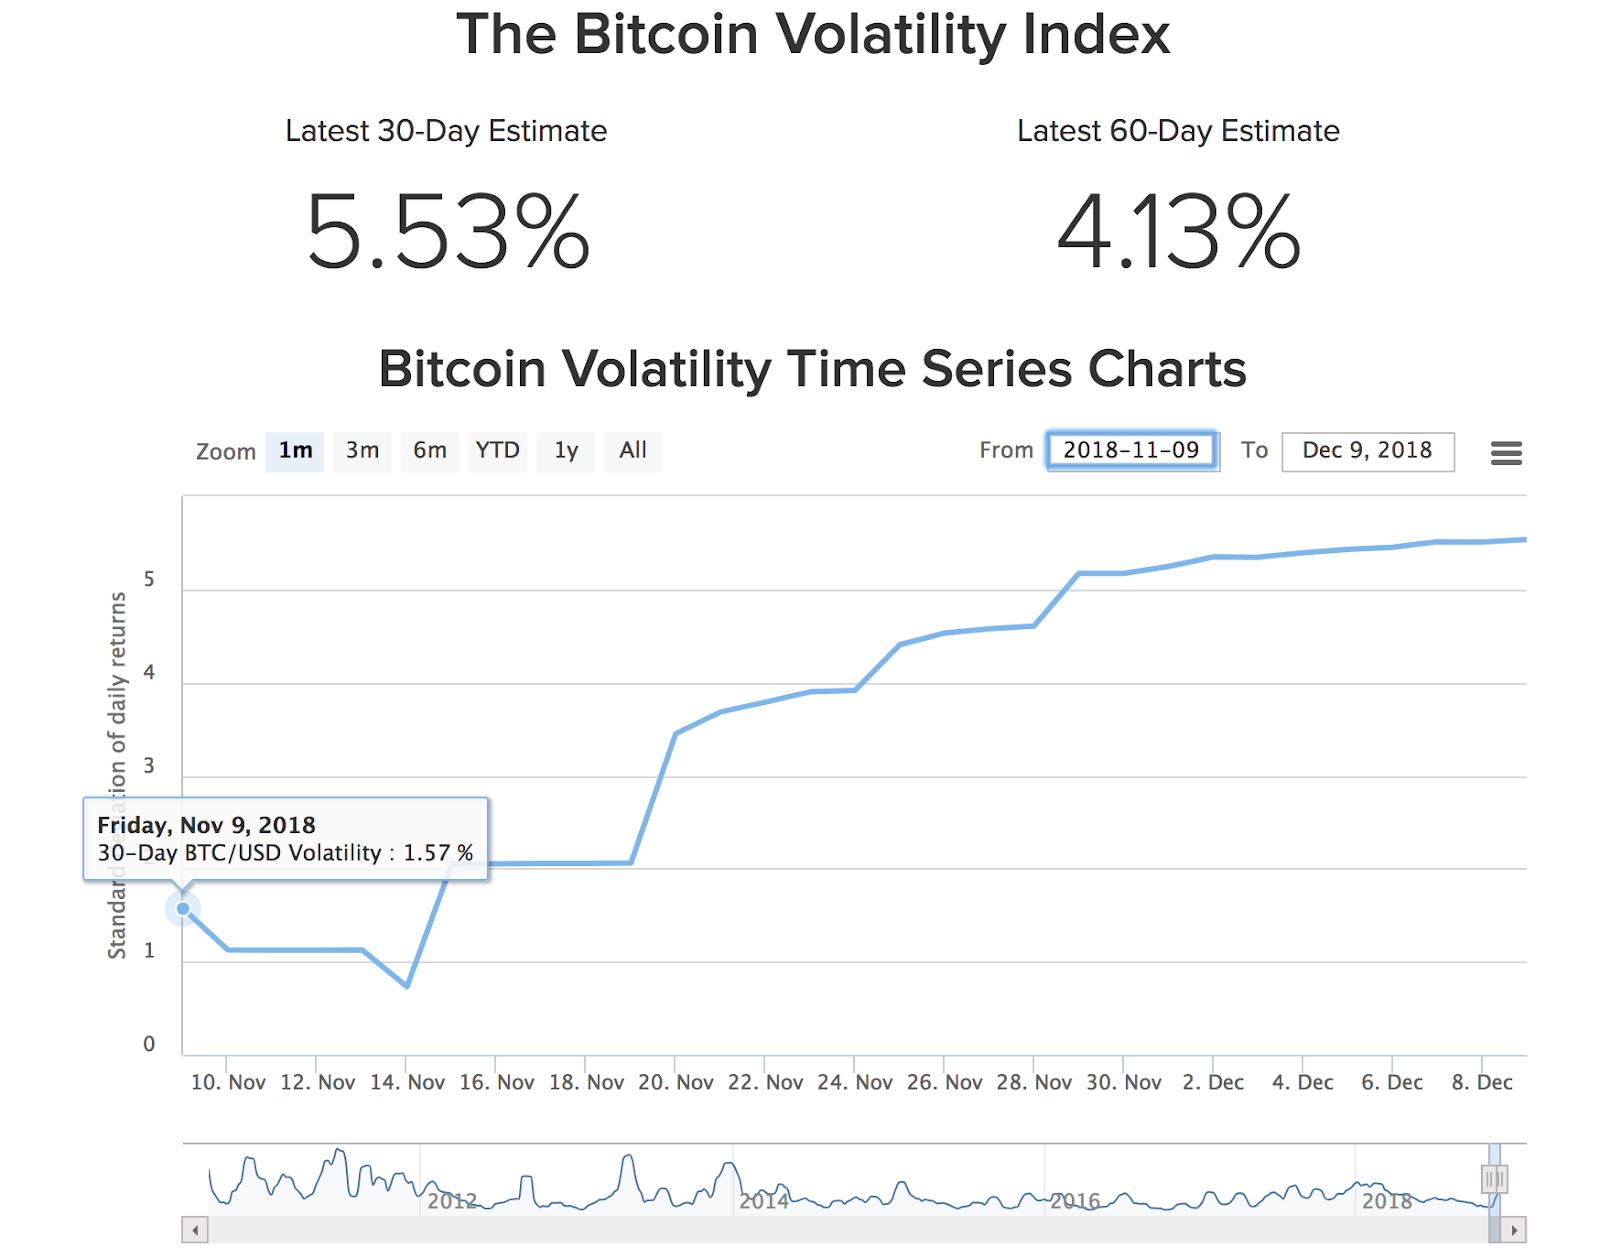 BTC-USD Volatility Index 30-Day Chart